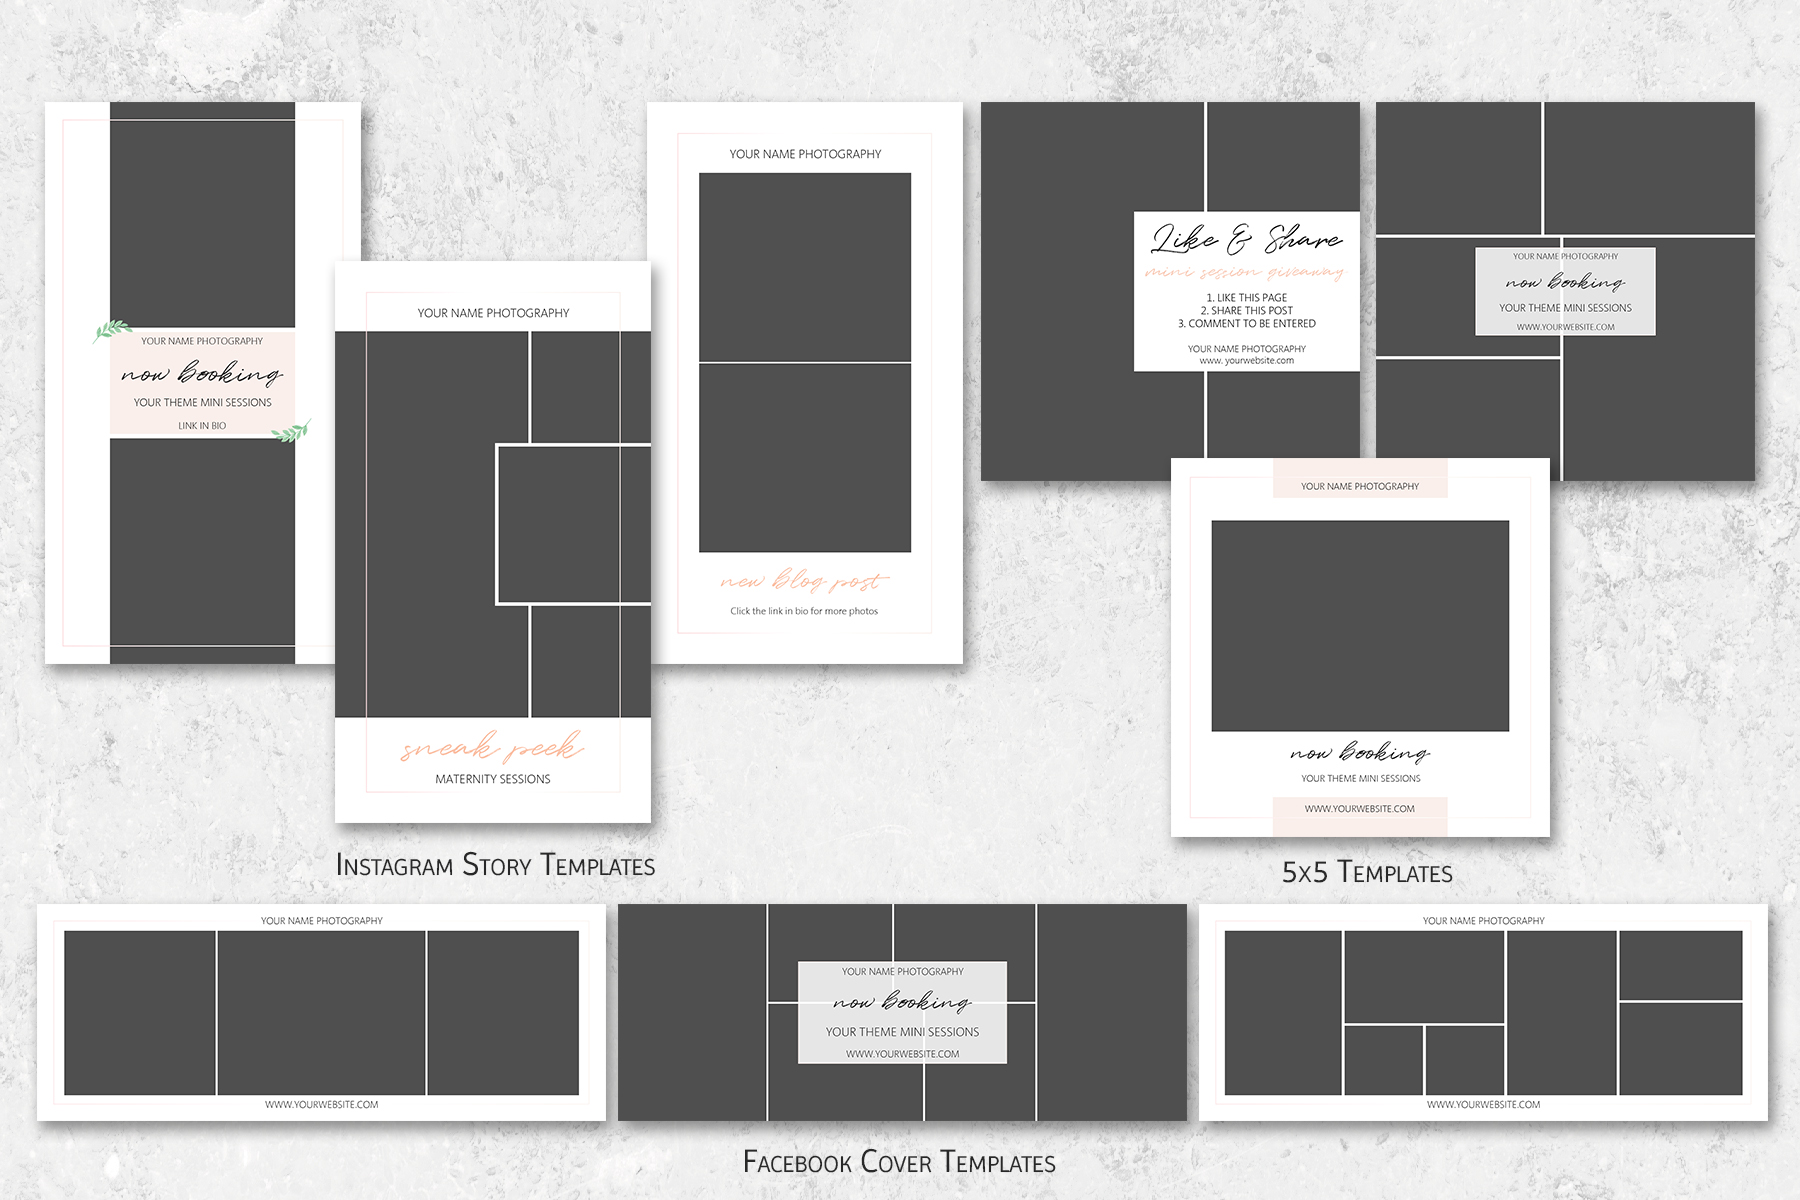 Social Media Marketing Templates for Photographers example image 2